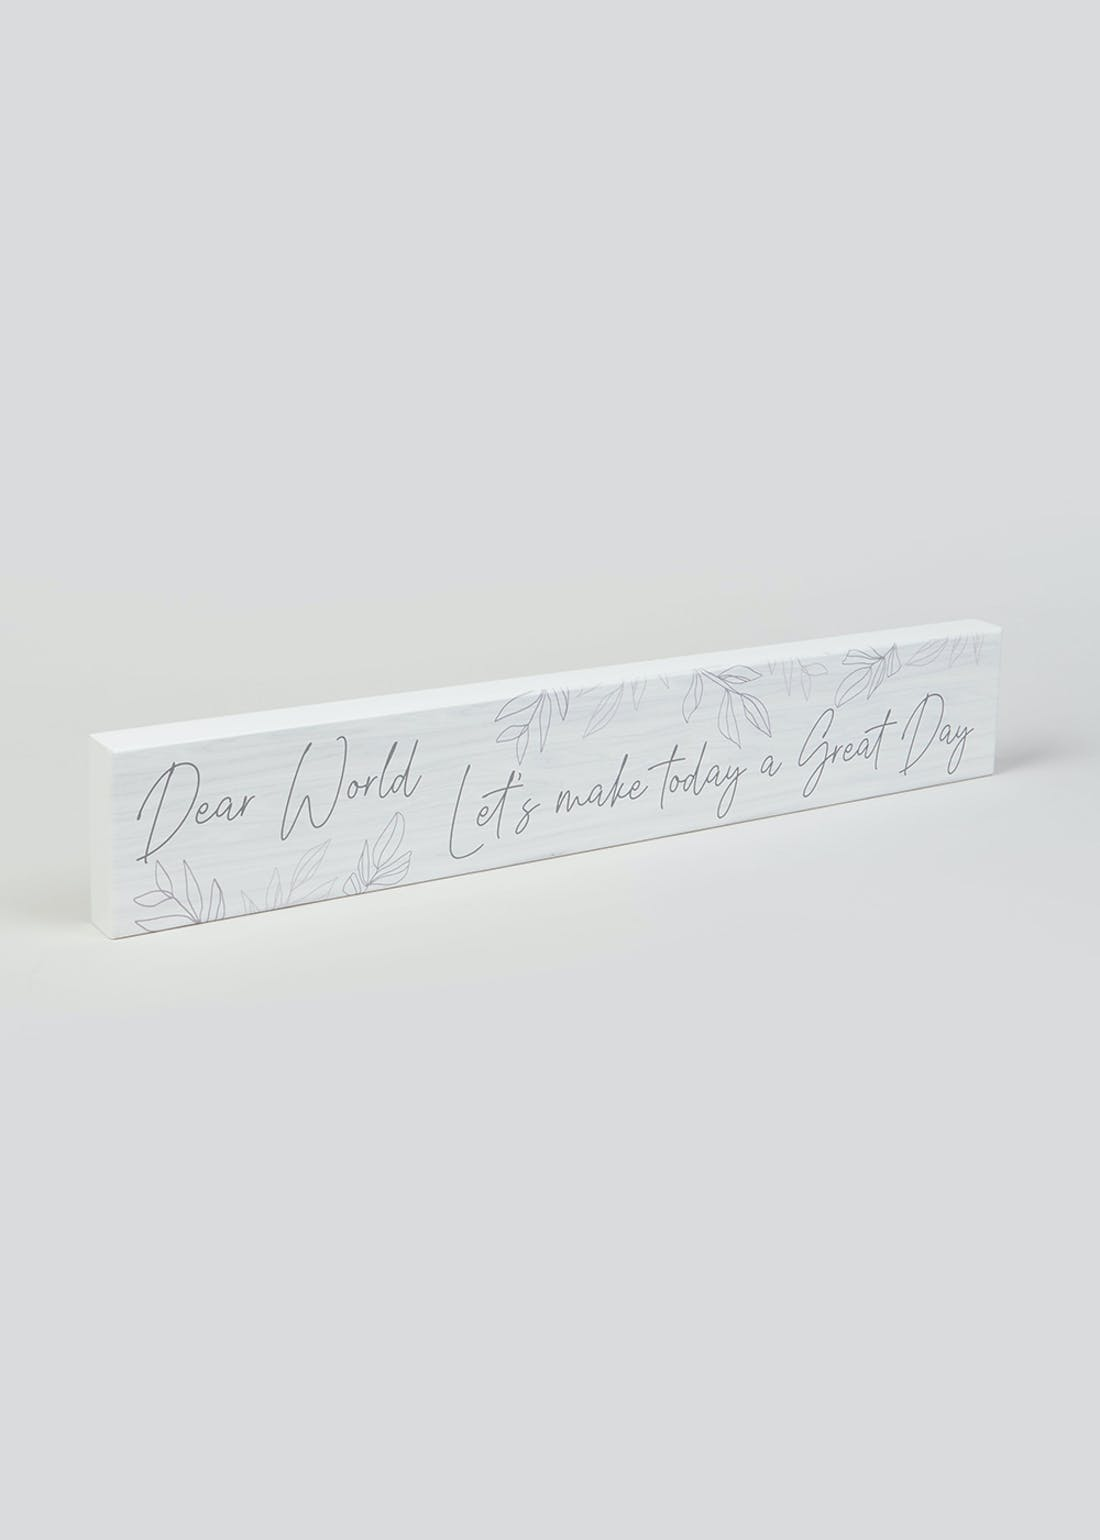 Great Day Quote Plaque (60cm x 9.5cm x 3cm)